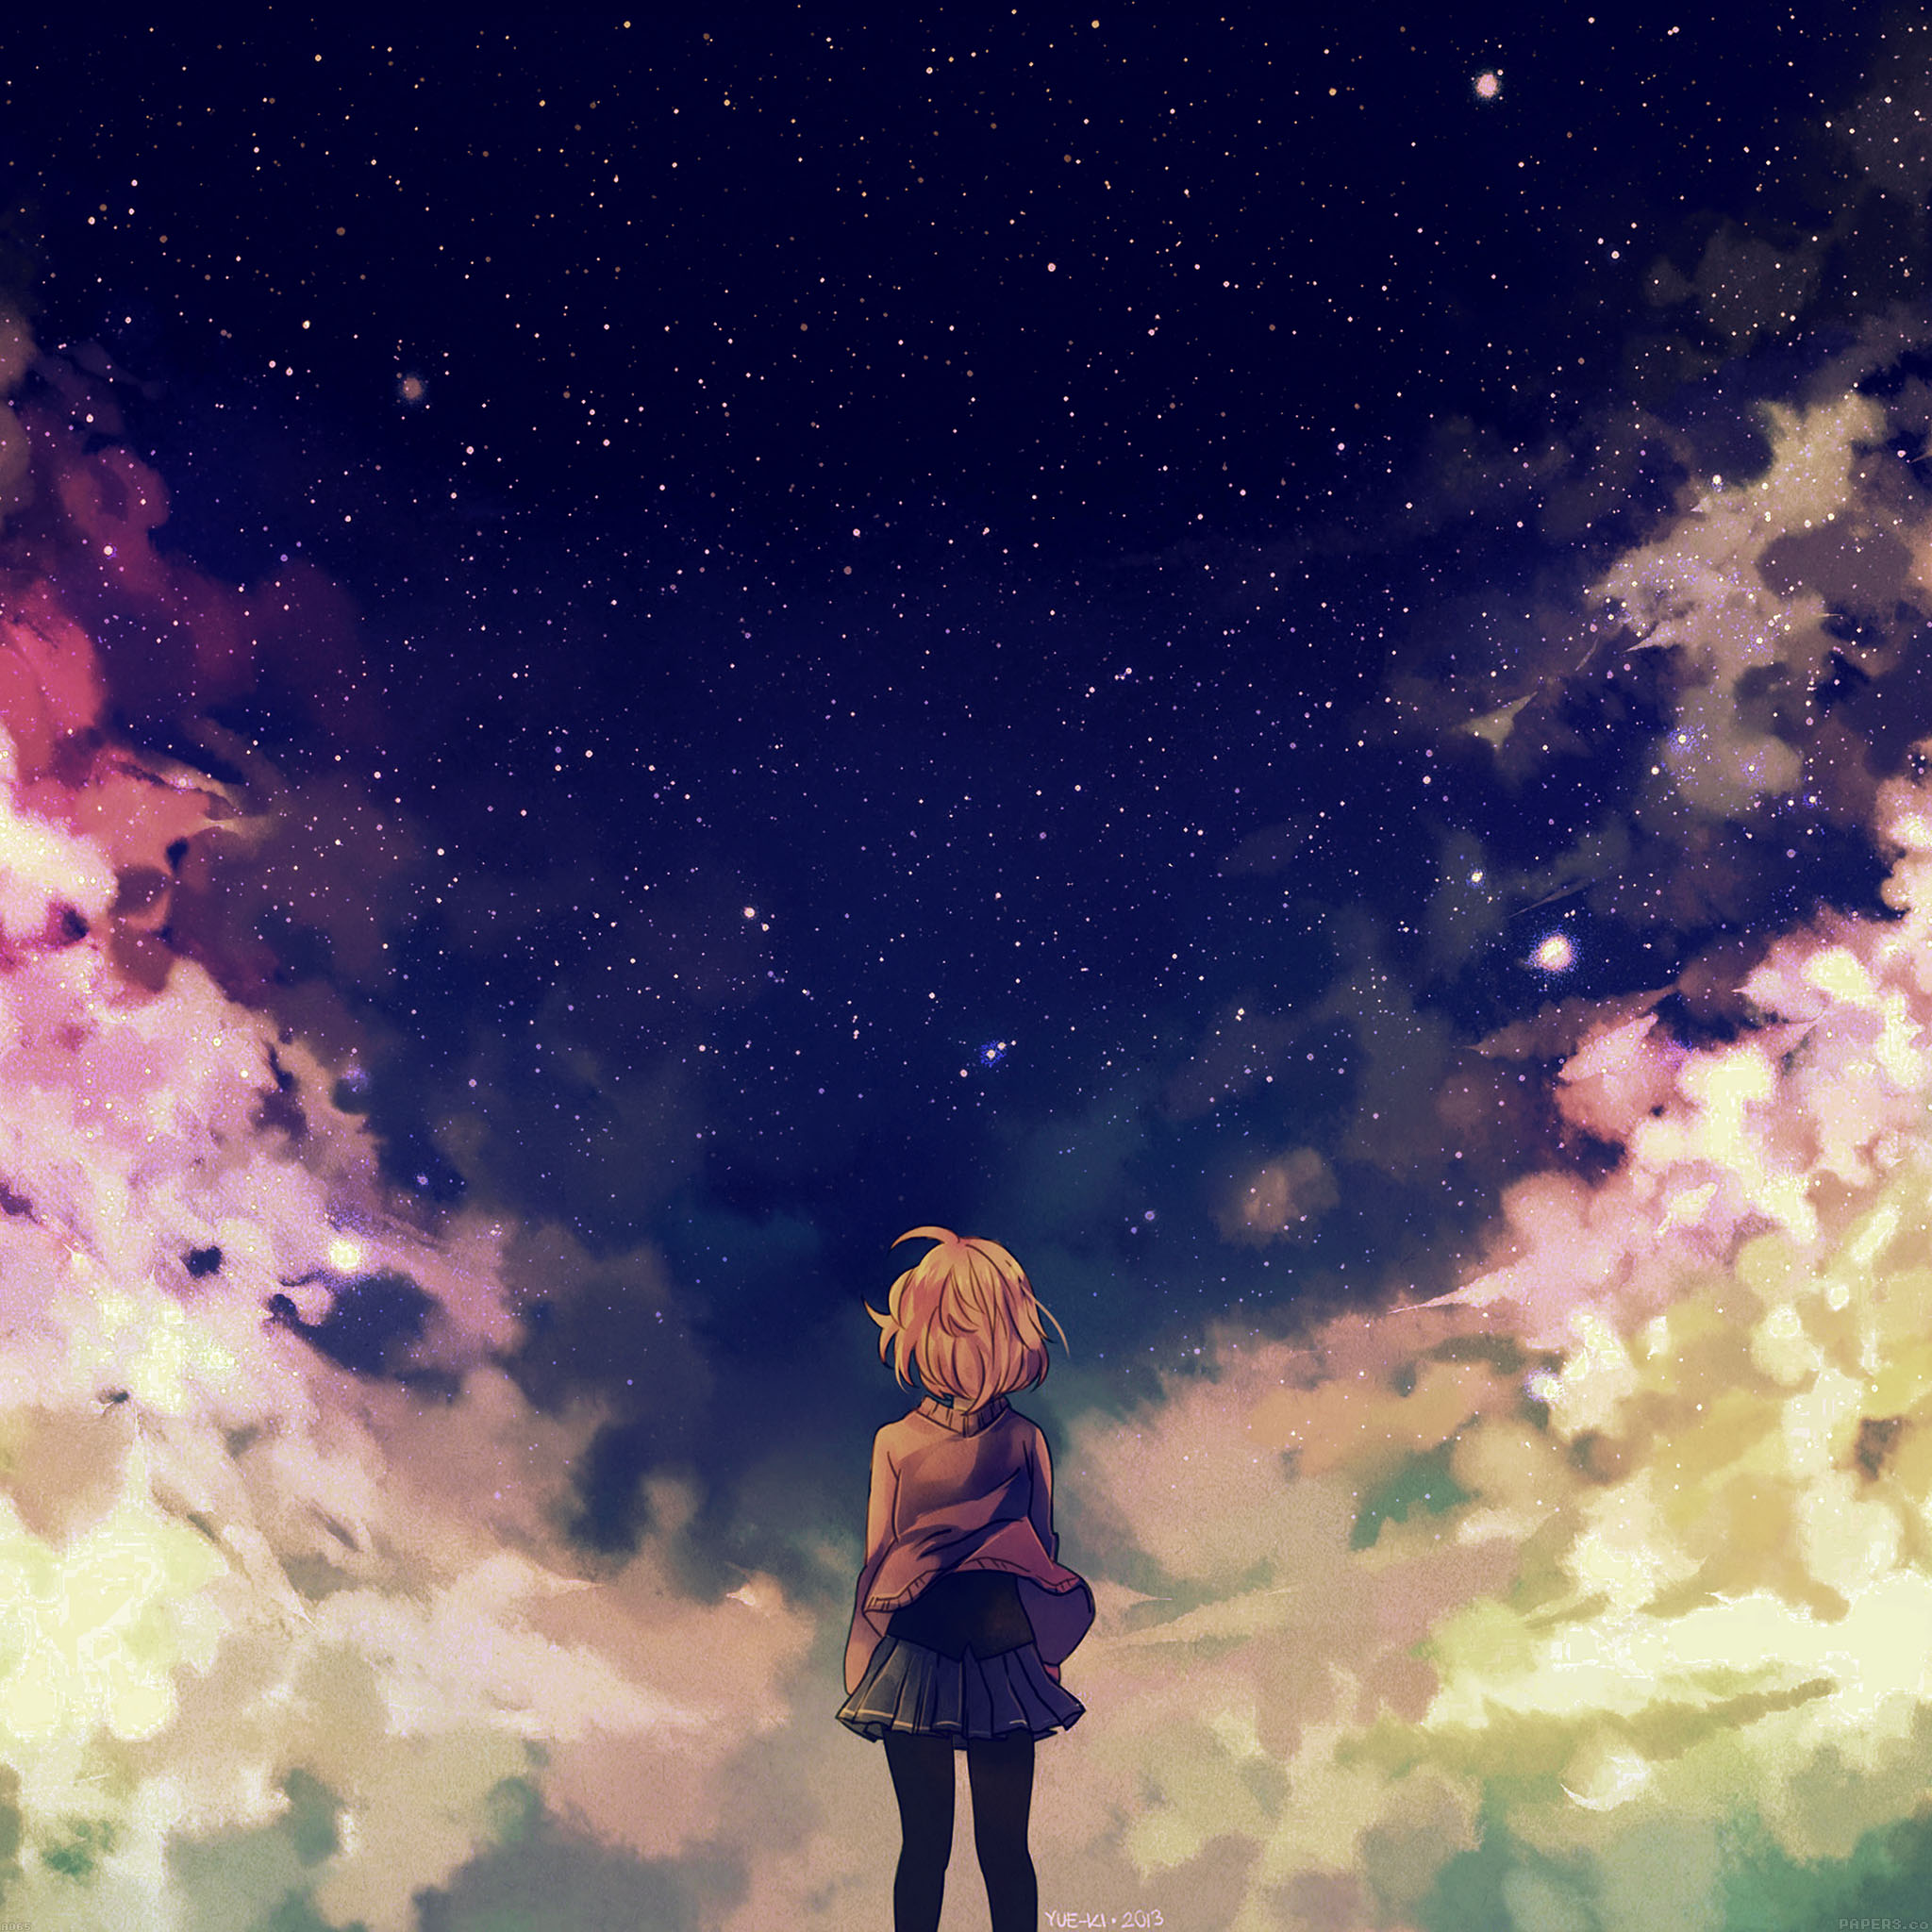 Samsung Wallpaper: Ad65-starry-space-illust-anime-girl-wallpaper